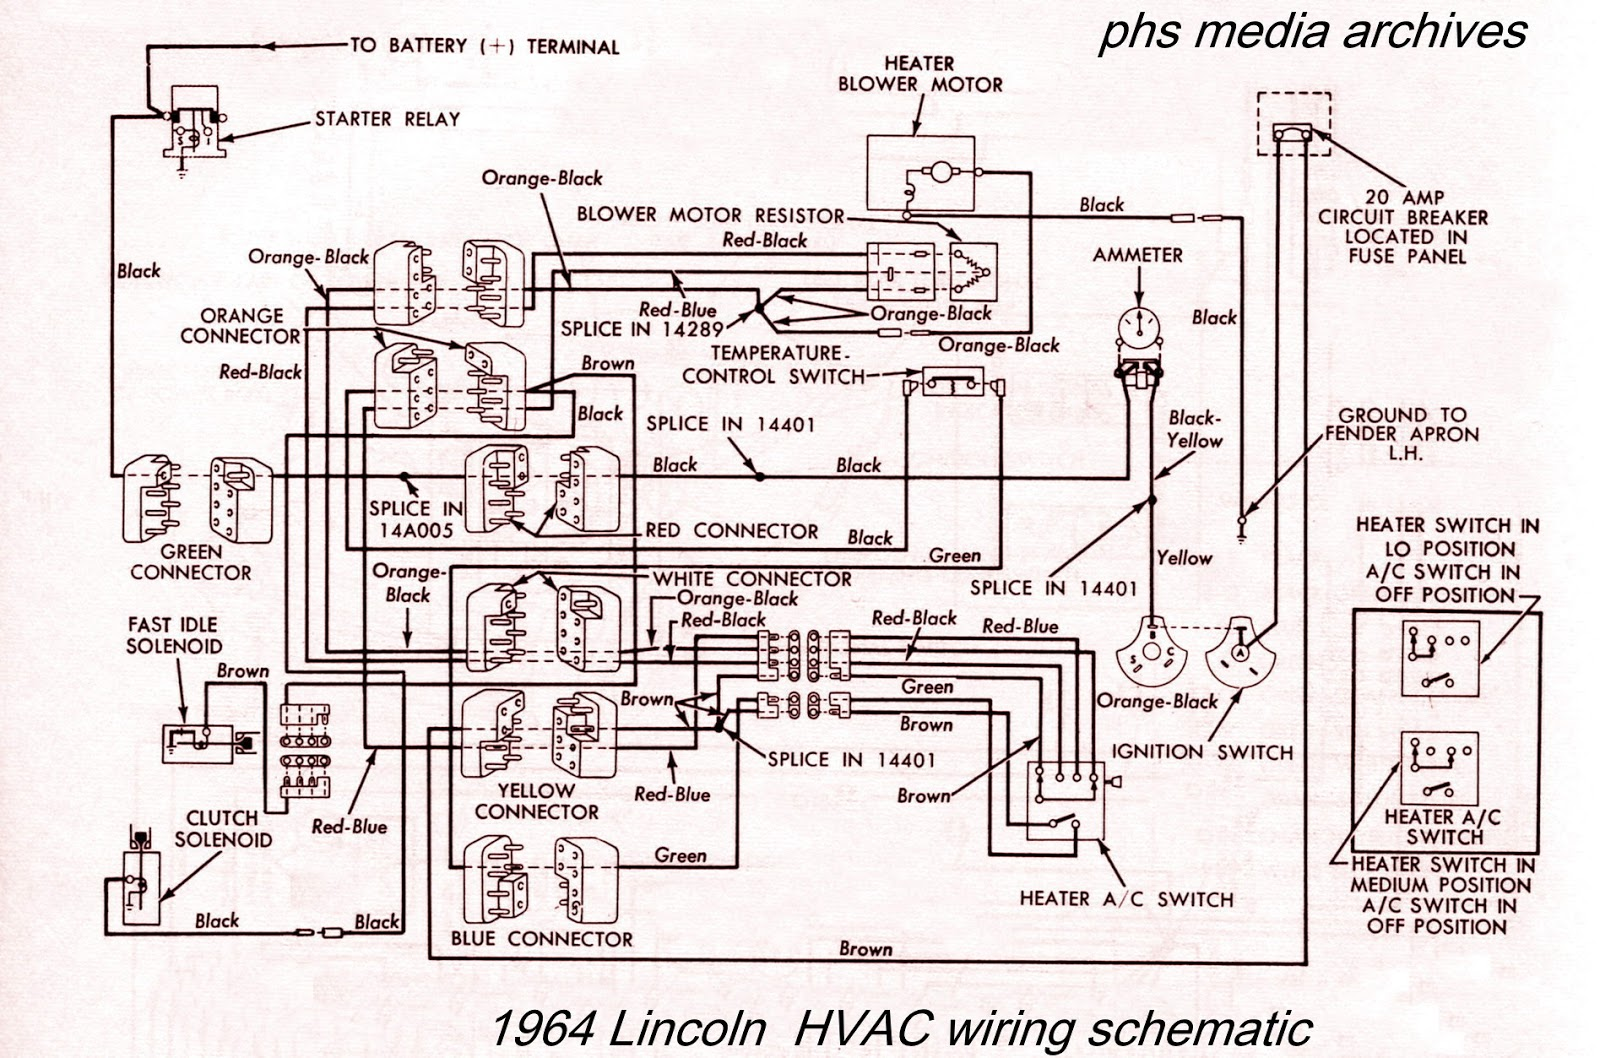 Lincoln Wiring Diagrams Good Guide Of Diagram Welder Tech Series 1960 1964 Phscollectorcarworld Rh Blogspot Com Town Car